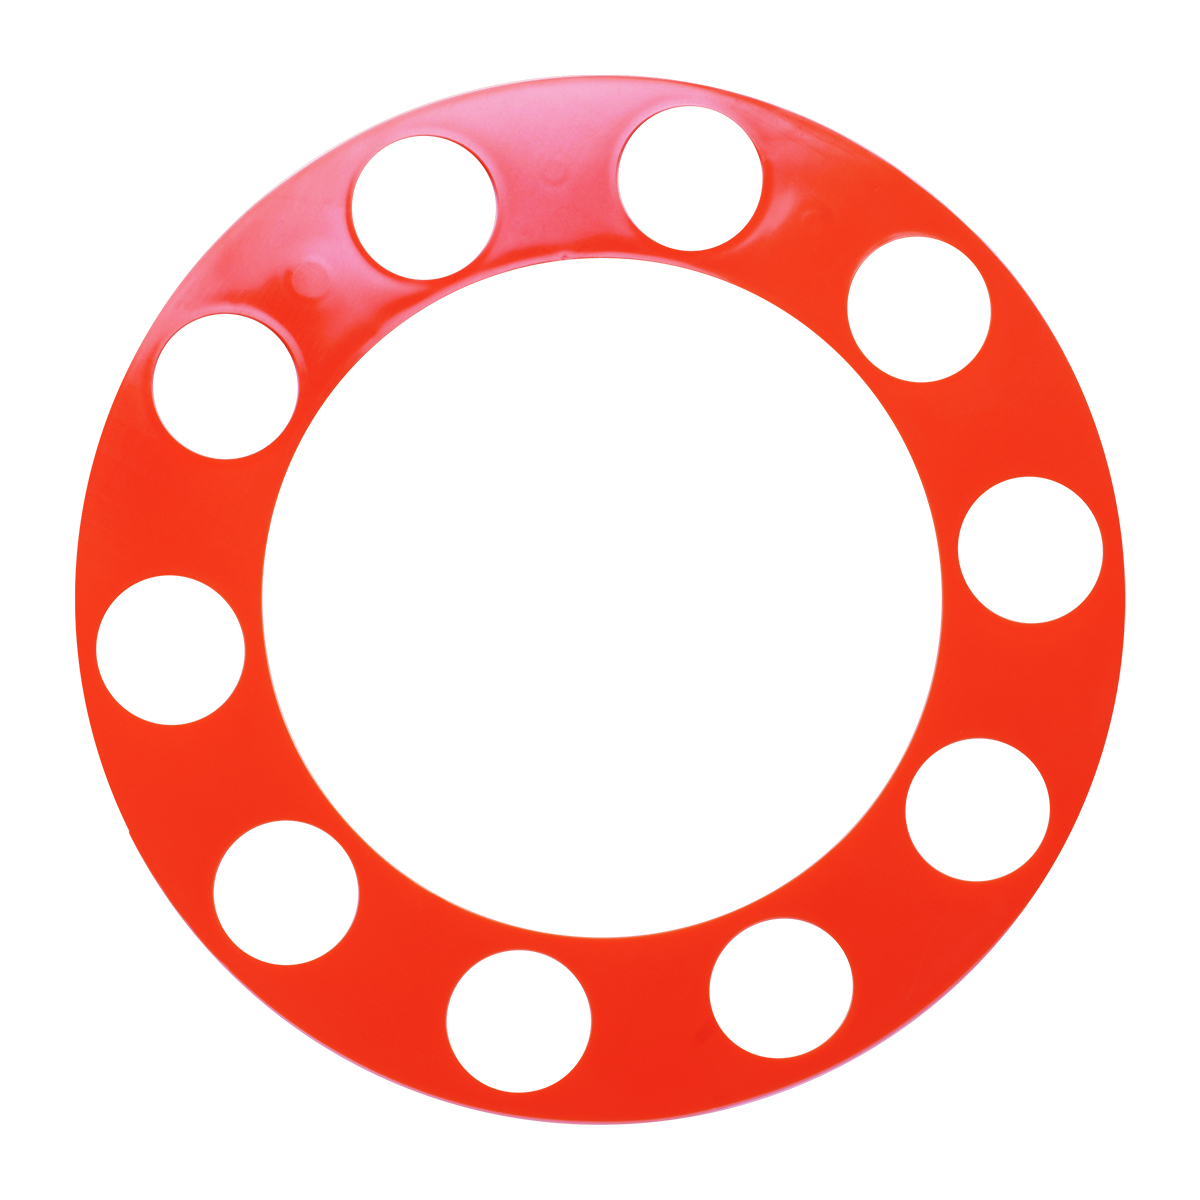 Orange Rim Protector with 10 Ring Holes